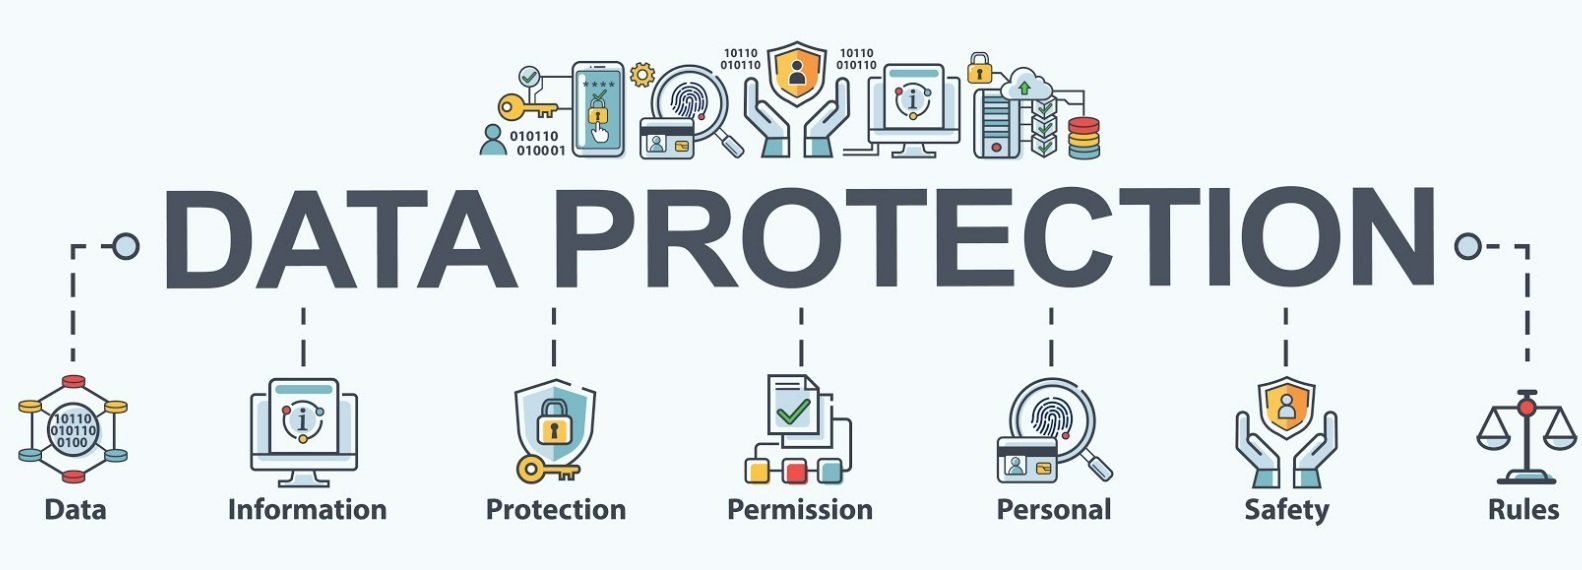 Data protection - a short infographic